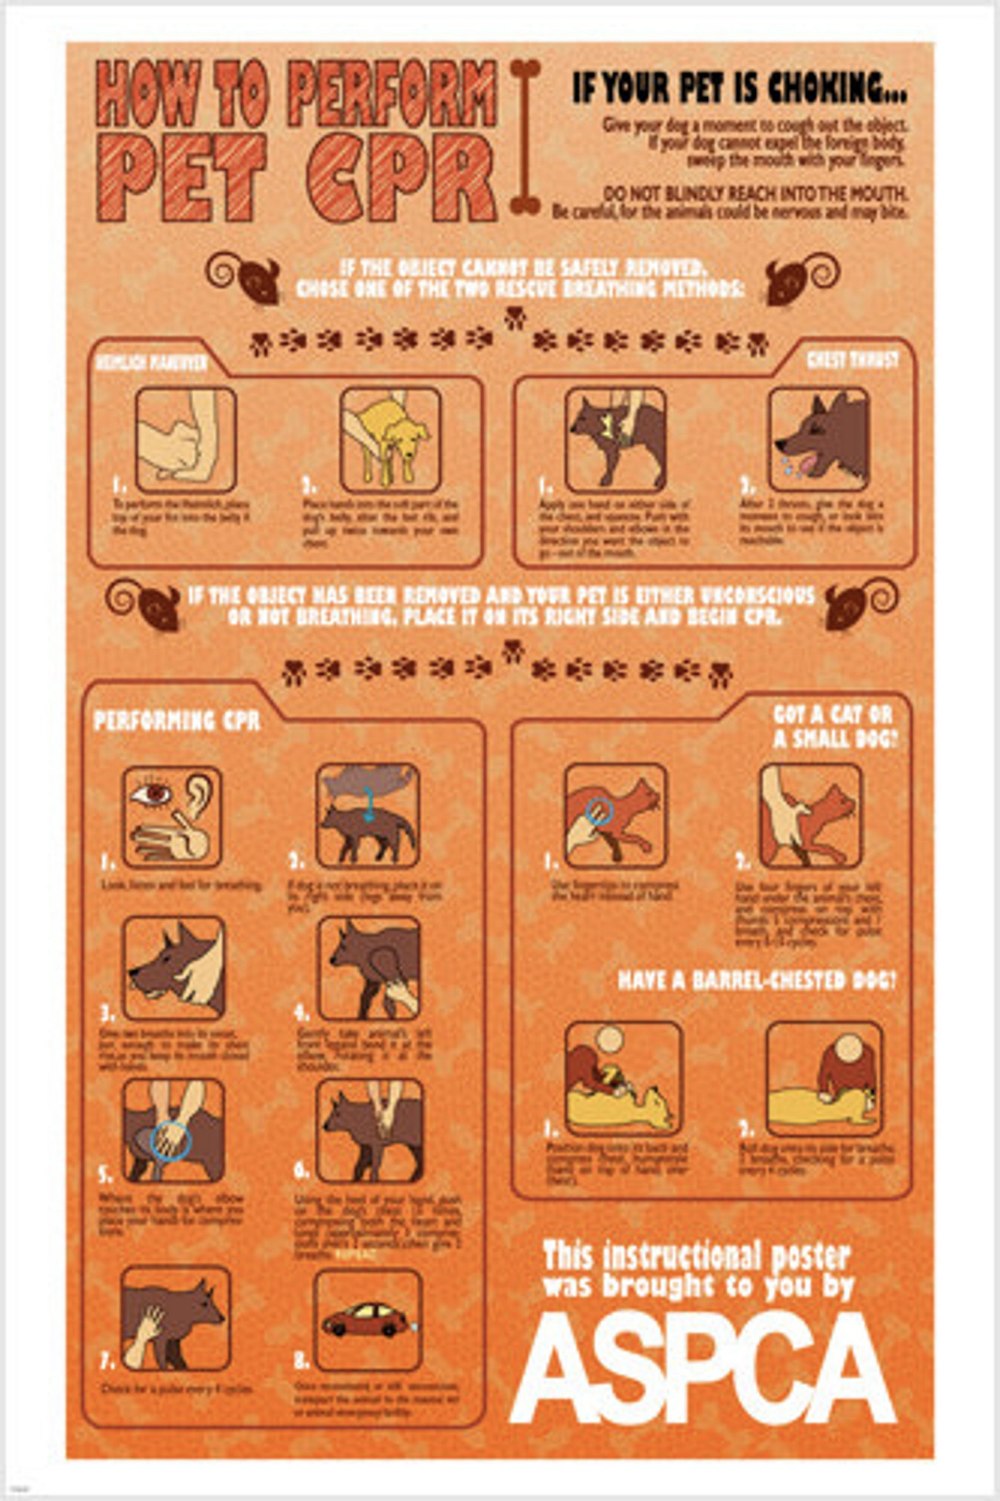 Pet Cpr Instructional Poster 24x36 Unique Educational Animal Friendly Hot New In 2020 Pet Health Cheap Pet Insurance Cat Illnesses